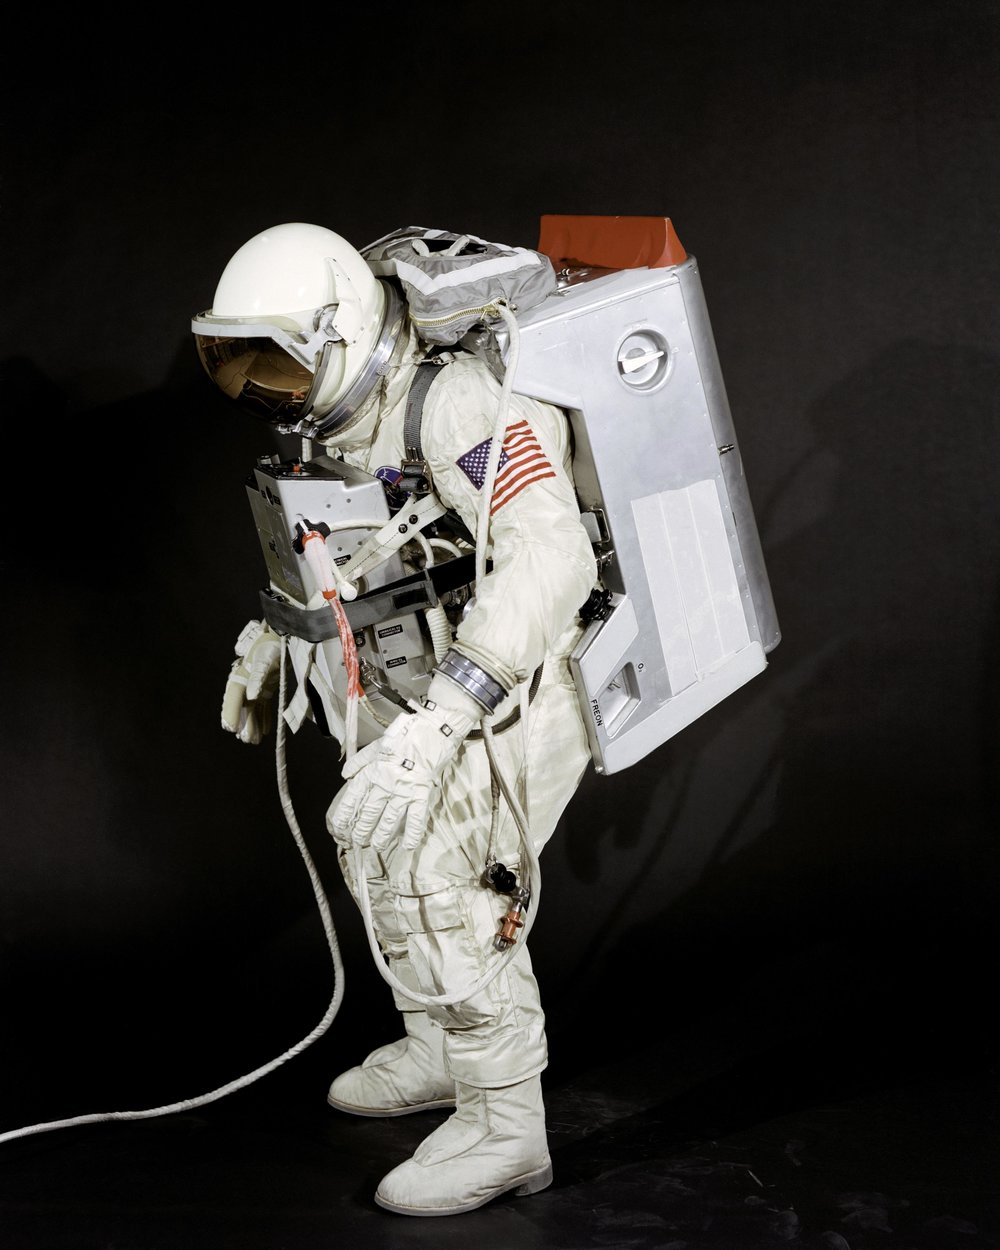 Fred Spross, Crew Systems Division, wears the spacesuit and extravehicular equipment planned for use by Gemini VIII astronaut David R. Scott